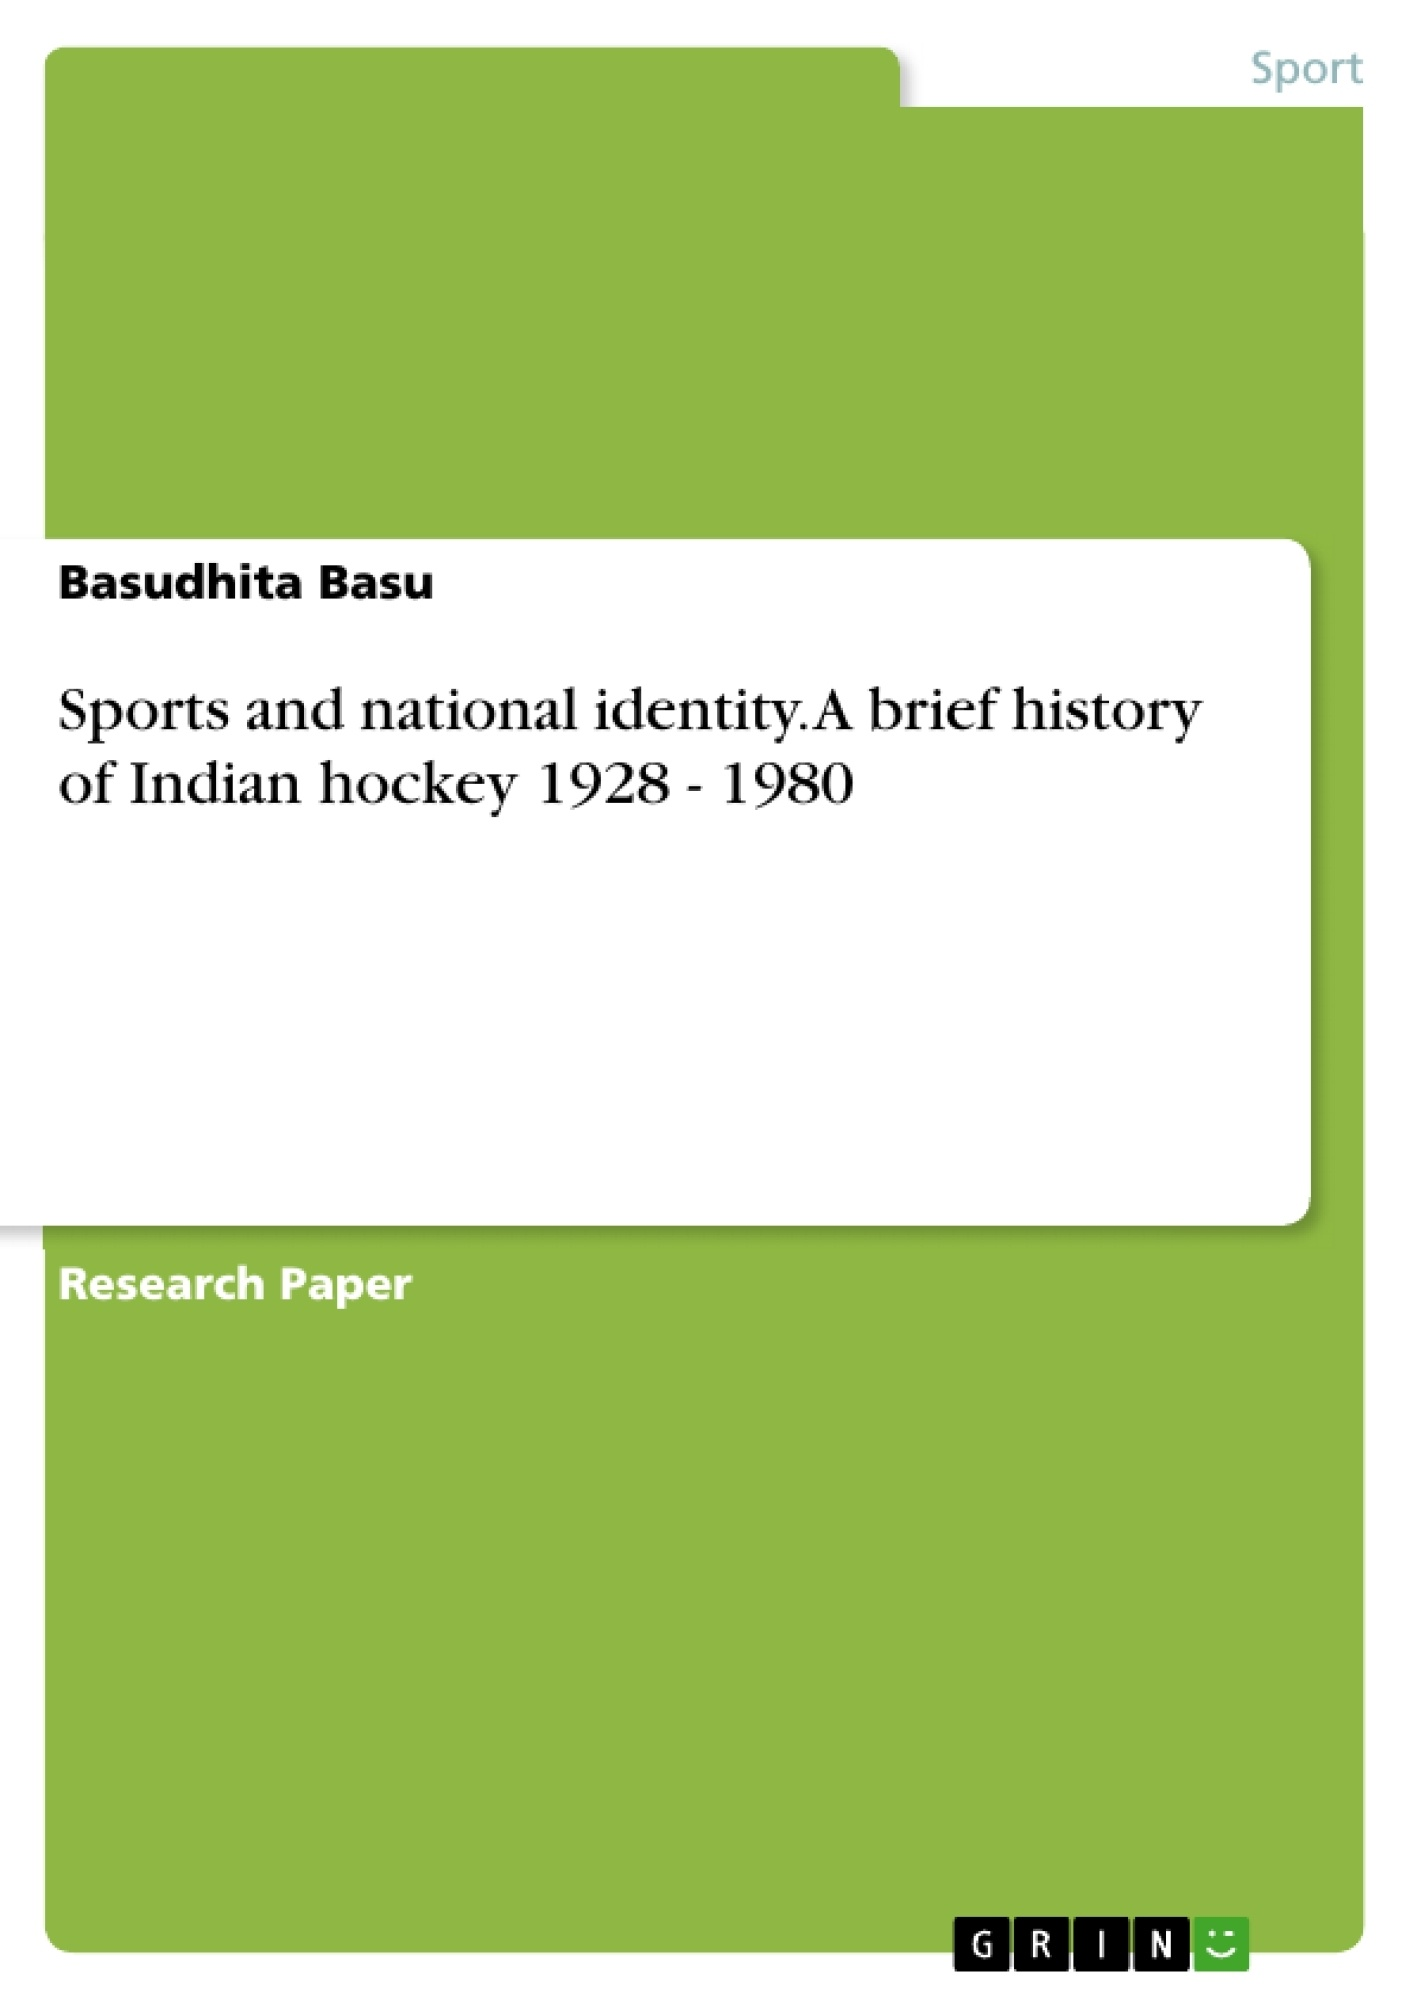 Title: Sports and national identity. A brief history of Indian hockey 1928 - 1980